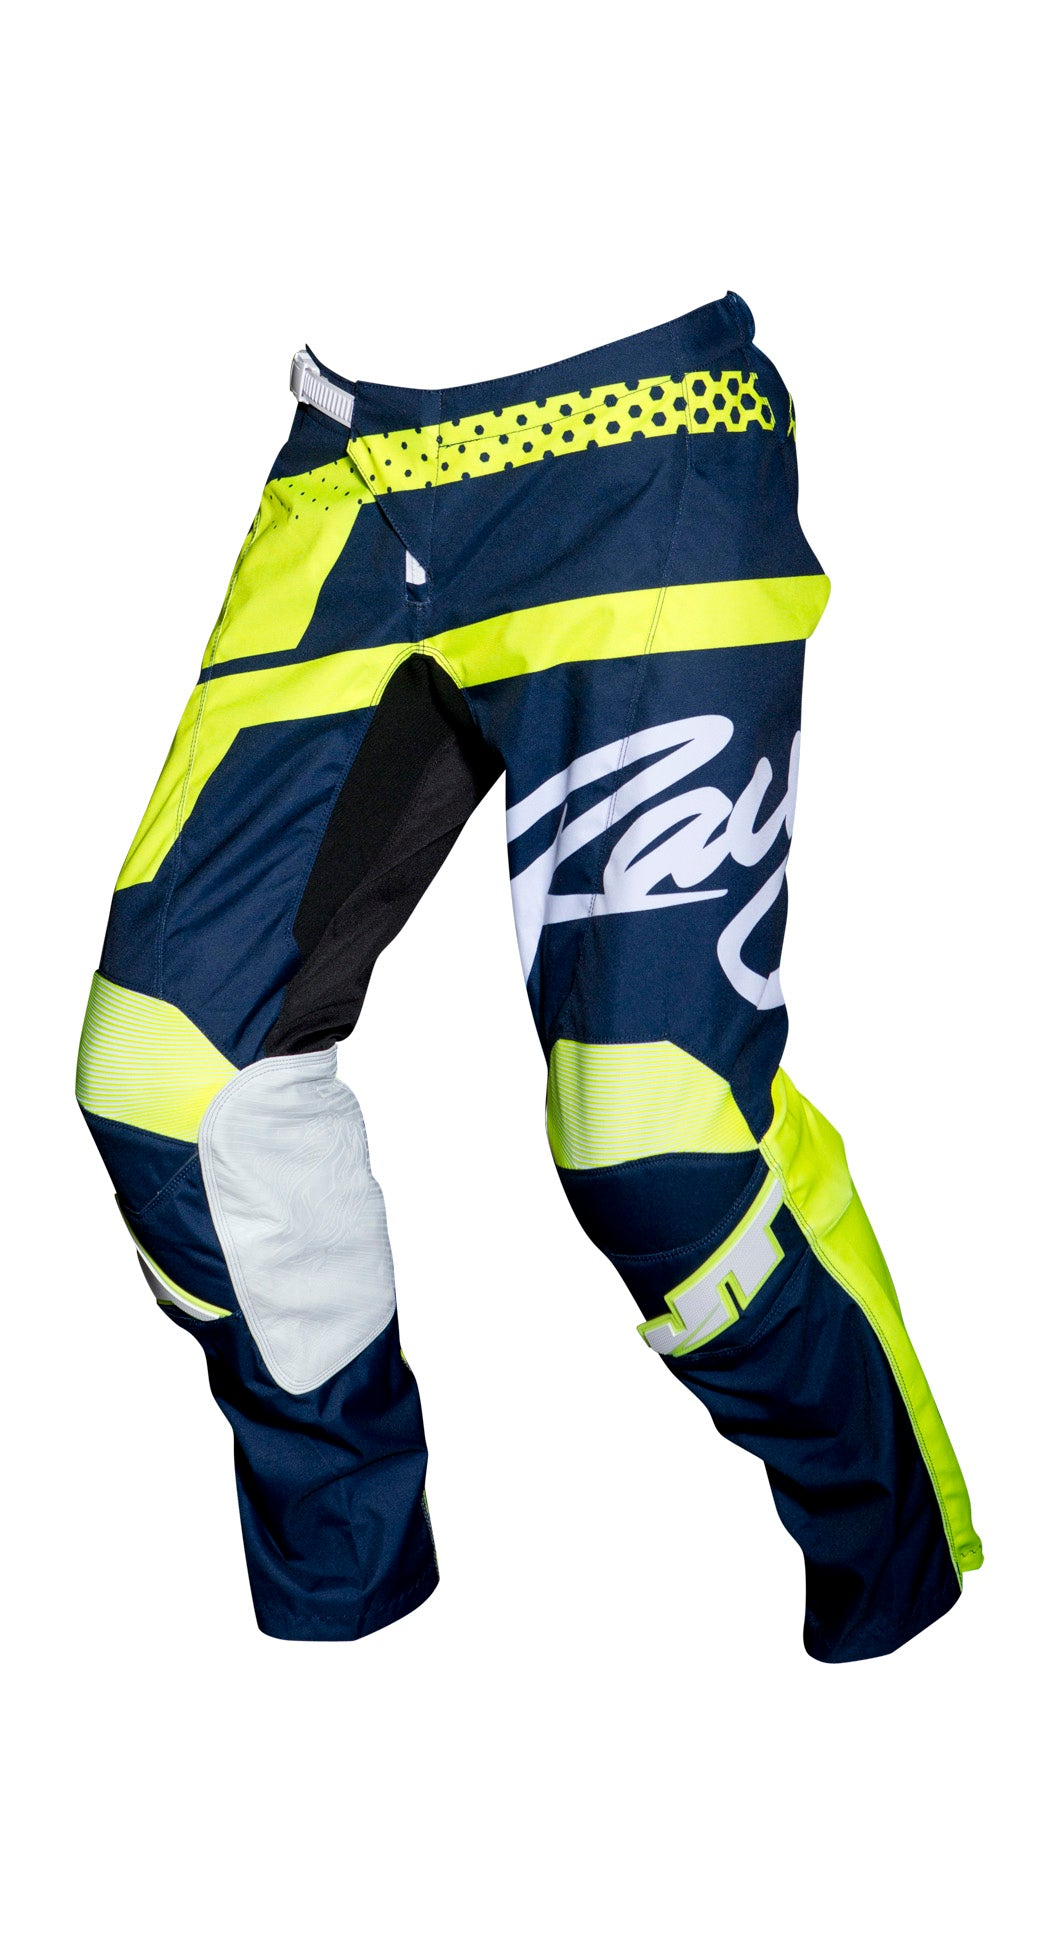 JT RACING USA-Flex Hi-Lo Jersey, Navy/Neon Yellow